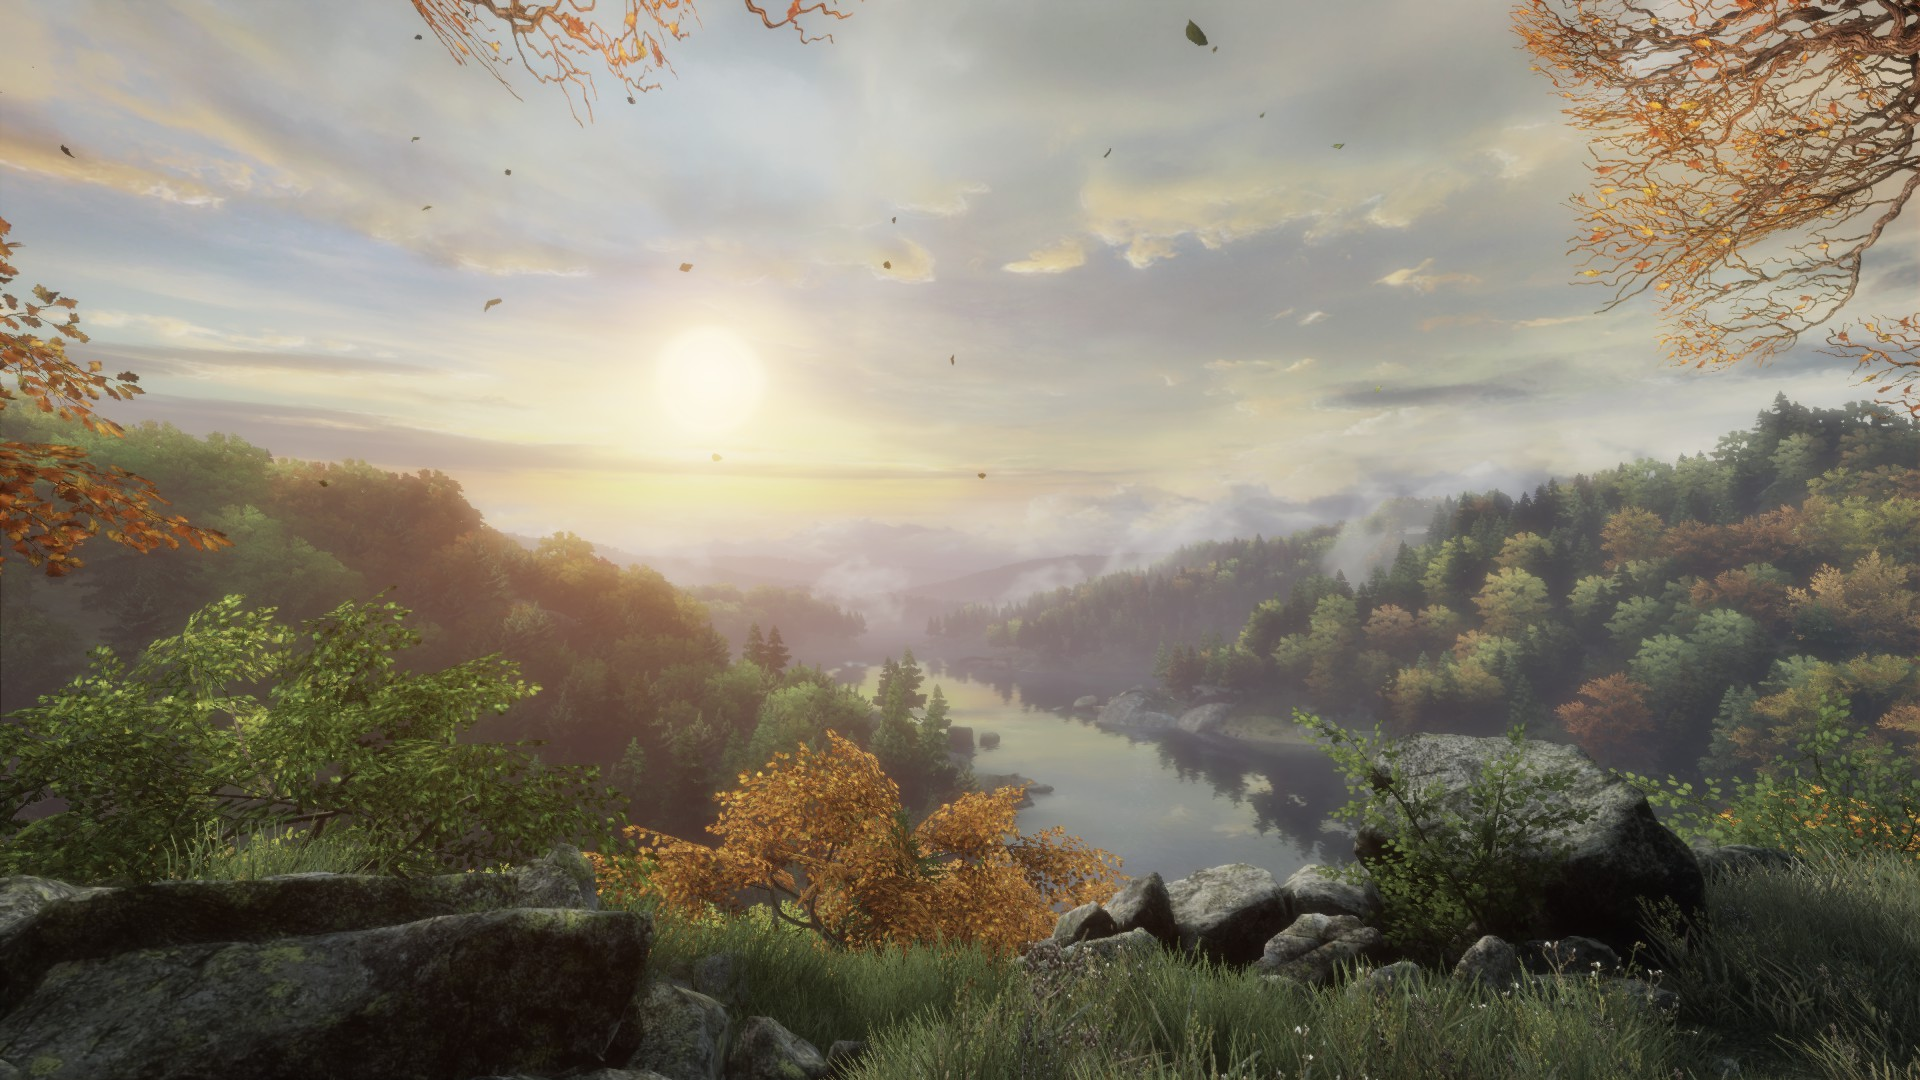 Artistry in Games 2014-09-25_00008 The Vanishing of Ethan Carter Review: Vanish Into This Tale Reviews  Wells verne the vanishing of ethan carter PS4 PC narrative lovecraft jules indie horror GOG.com GOG exploration ethan carter ethan cthulu carter astronauts astronaut